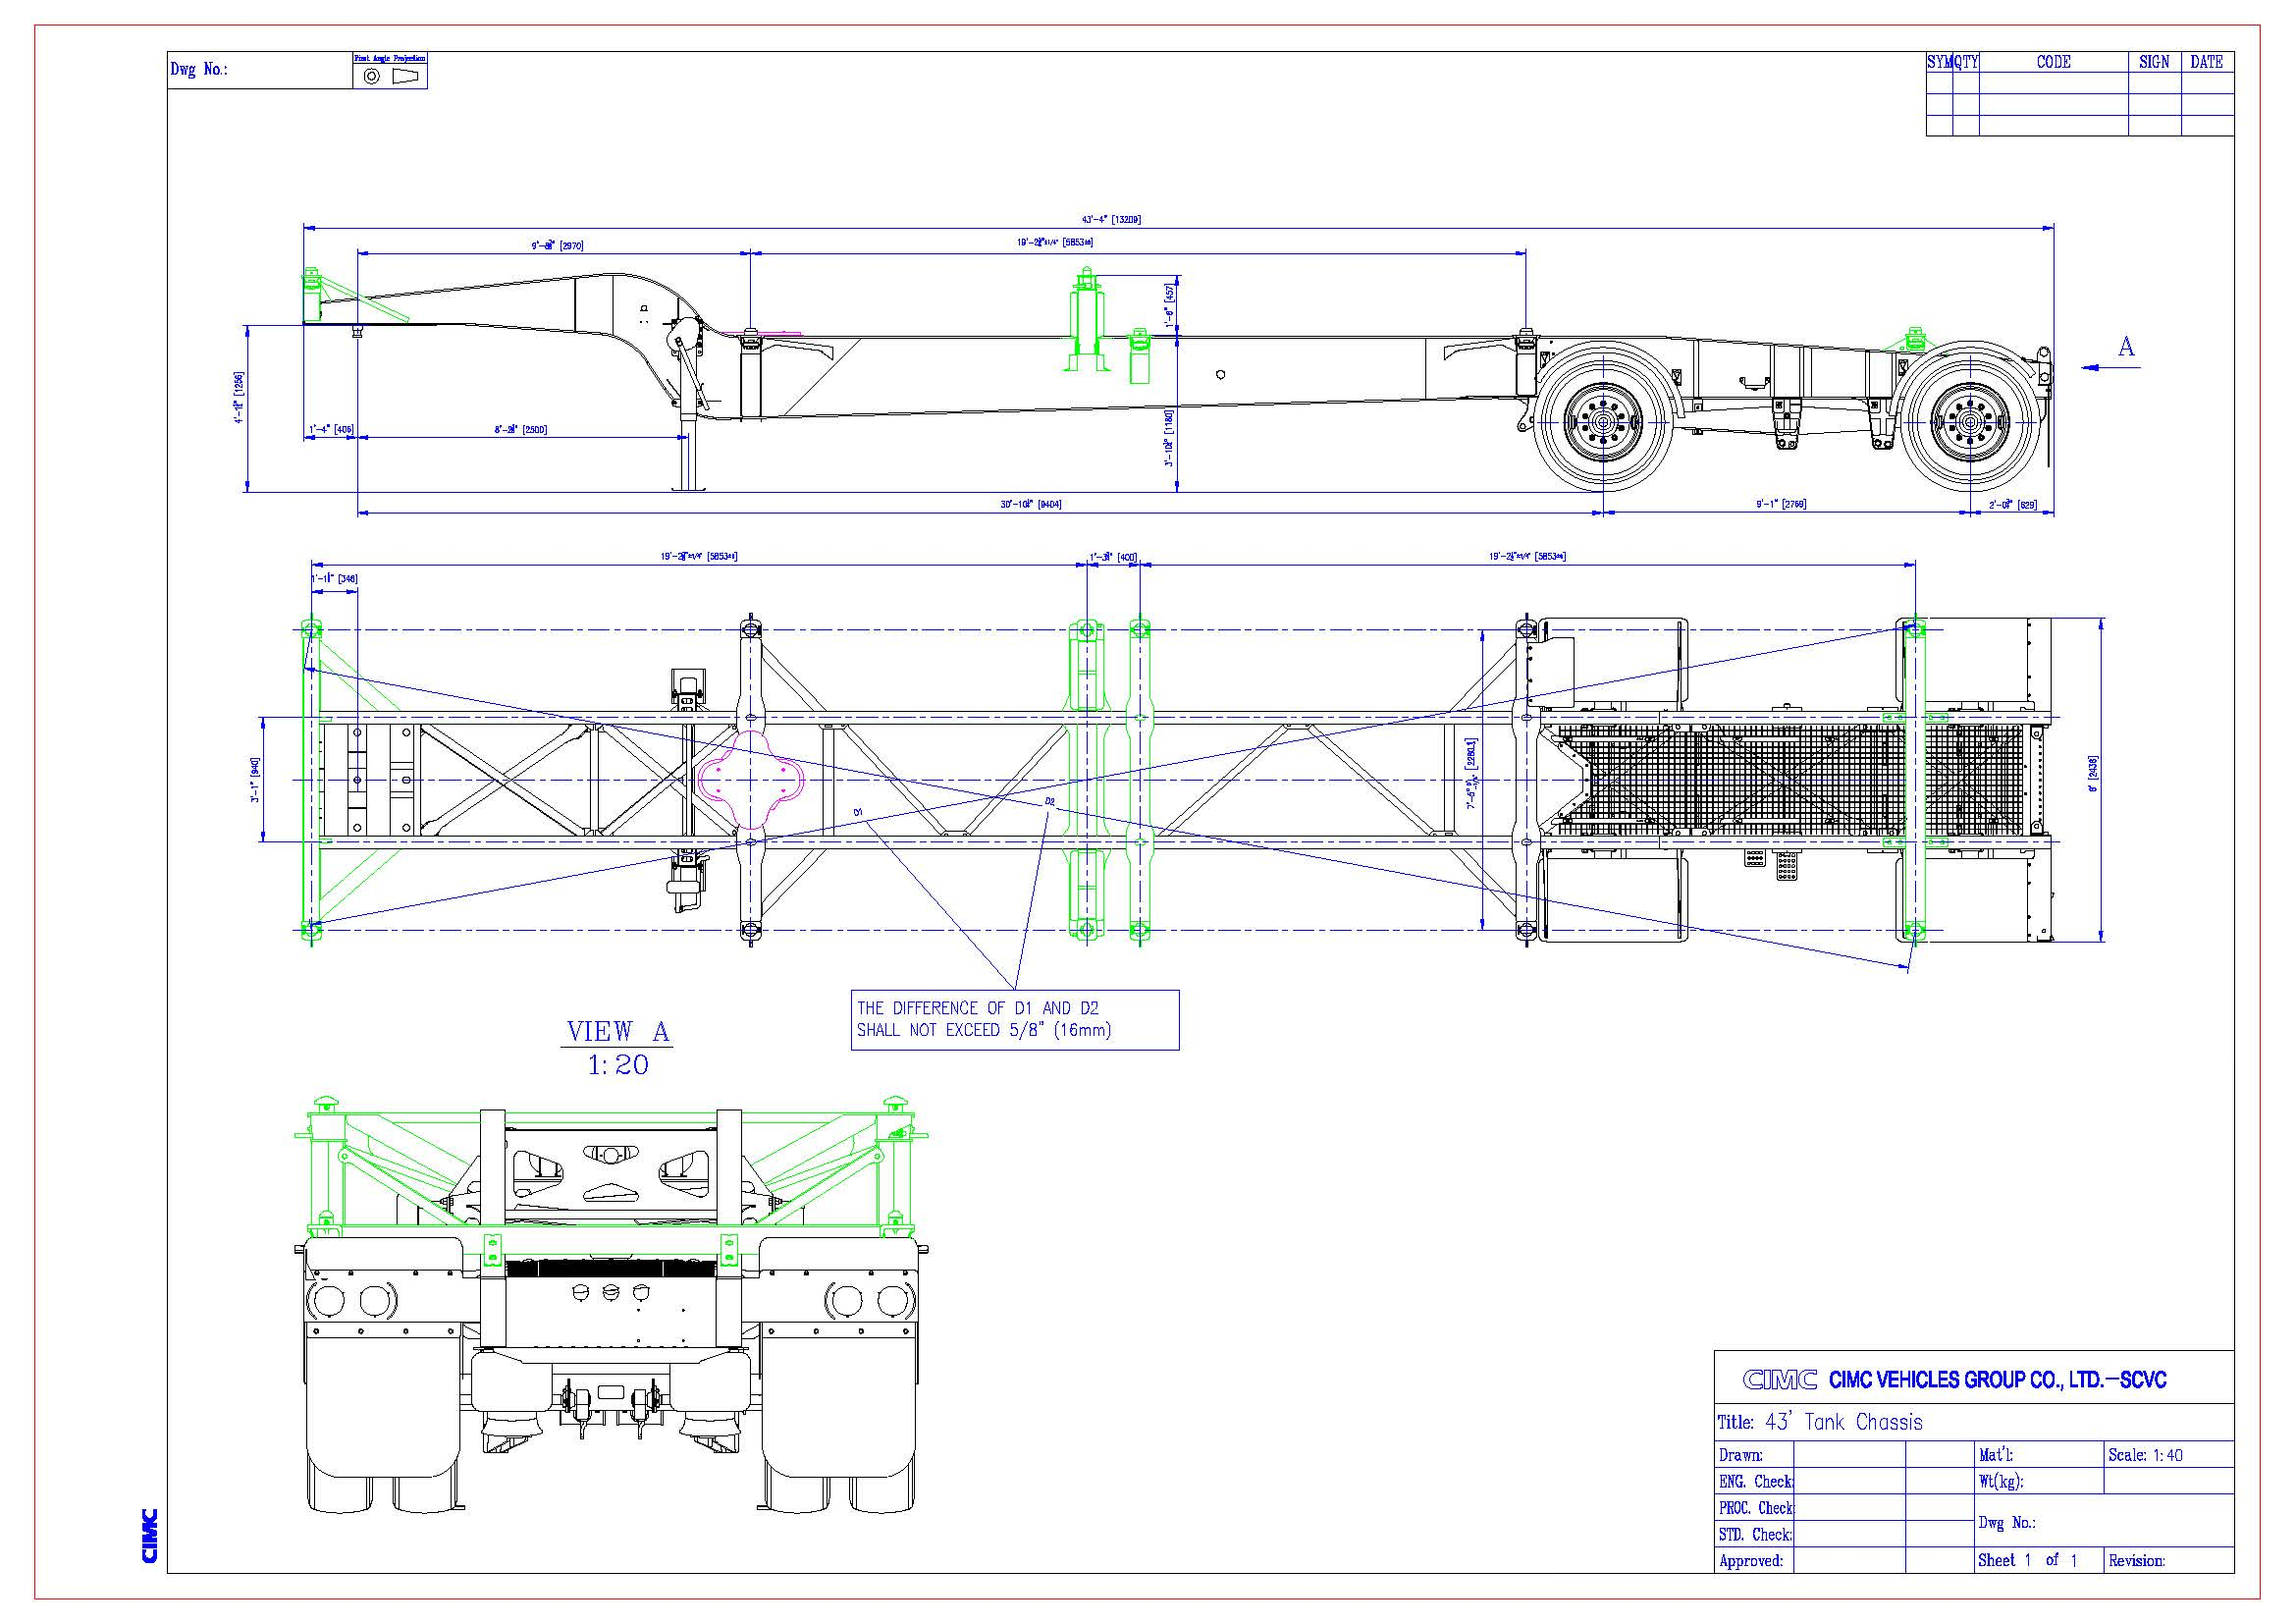 phillips trailer wiring diagram blair trailer wiring diagram elsavadorla